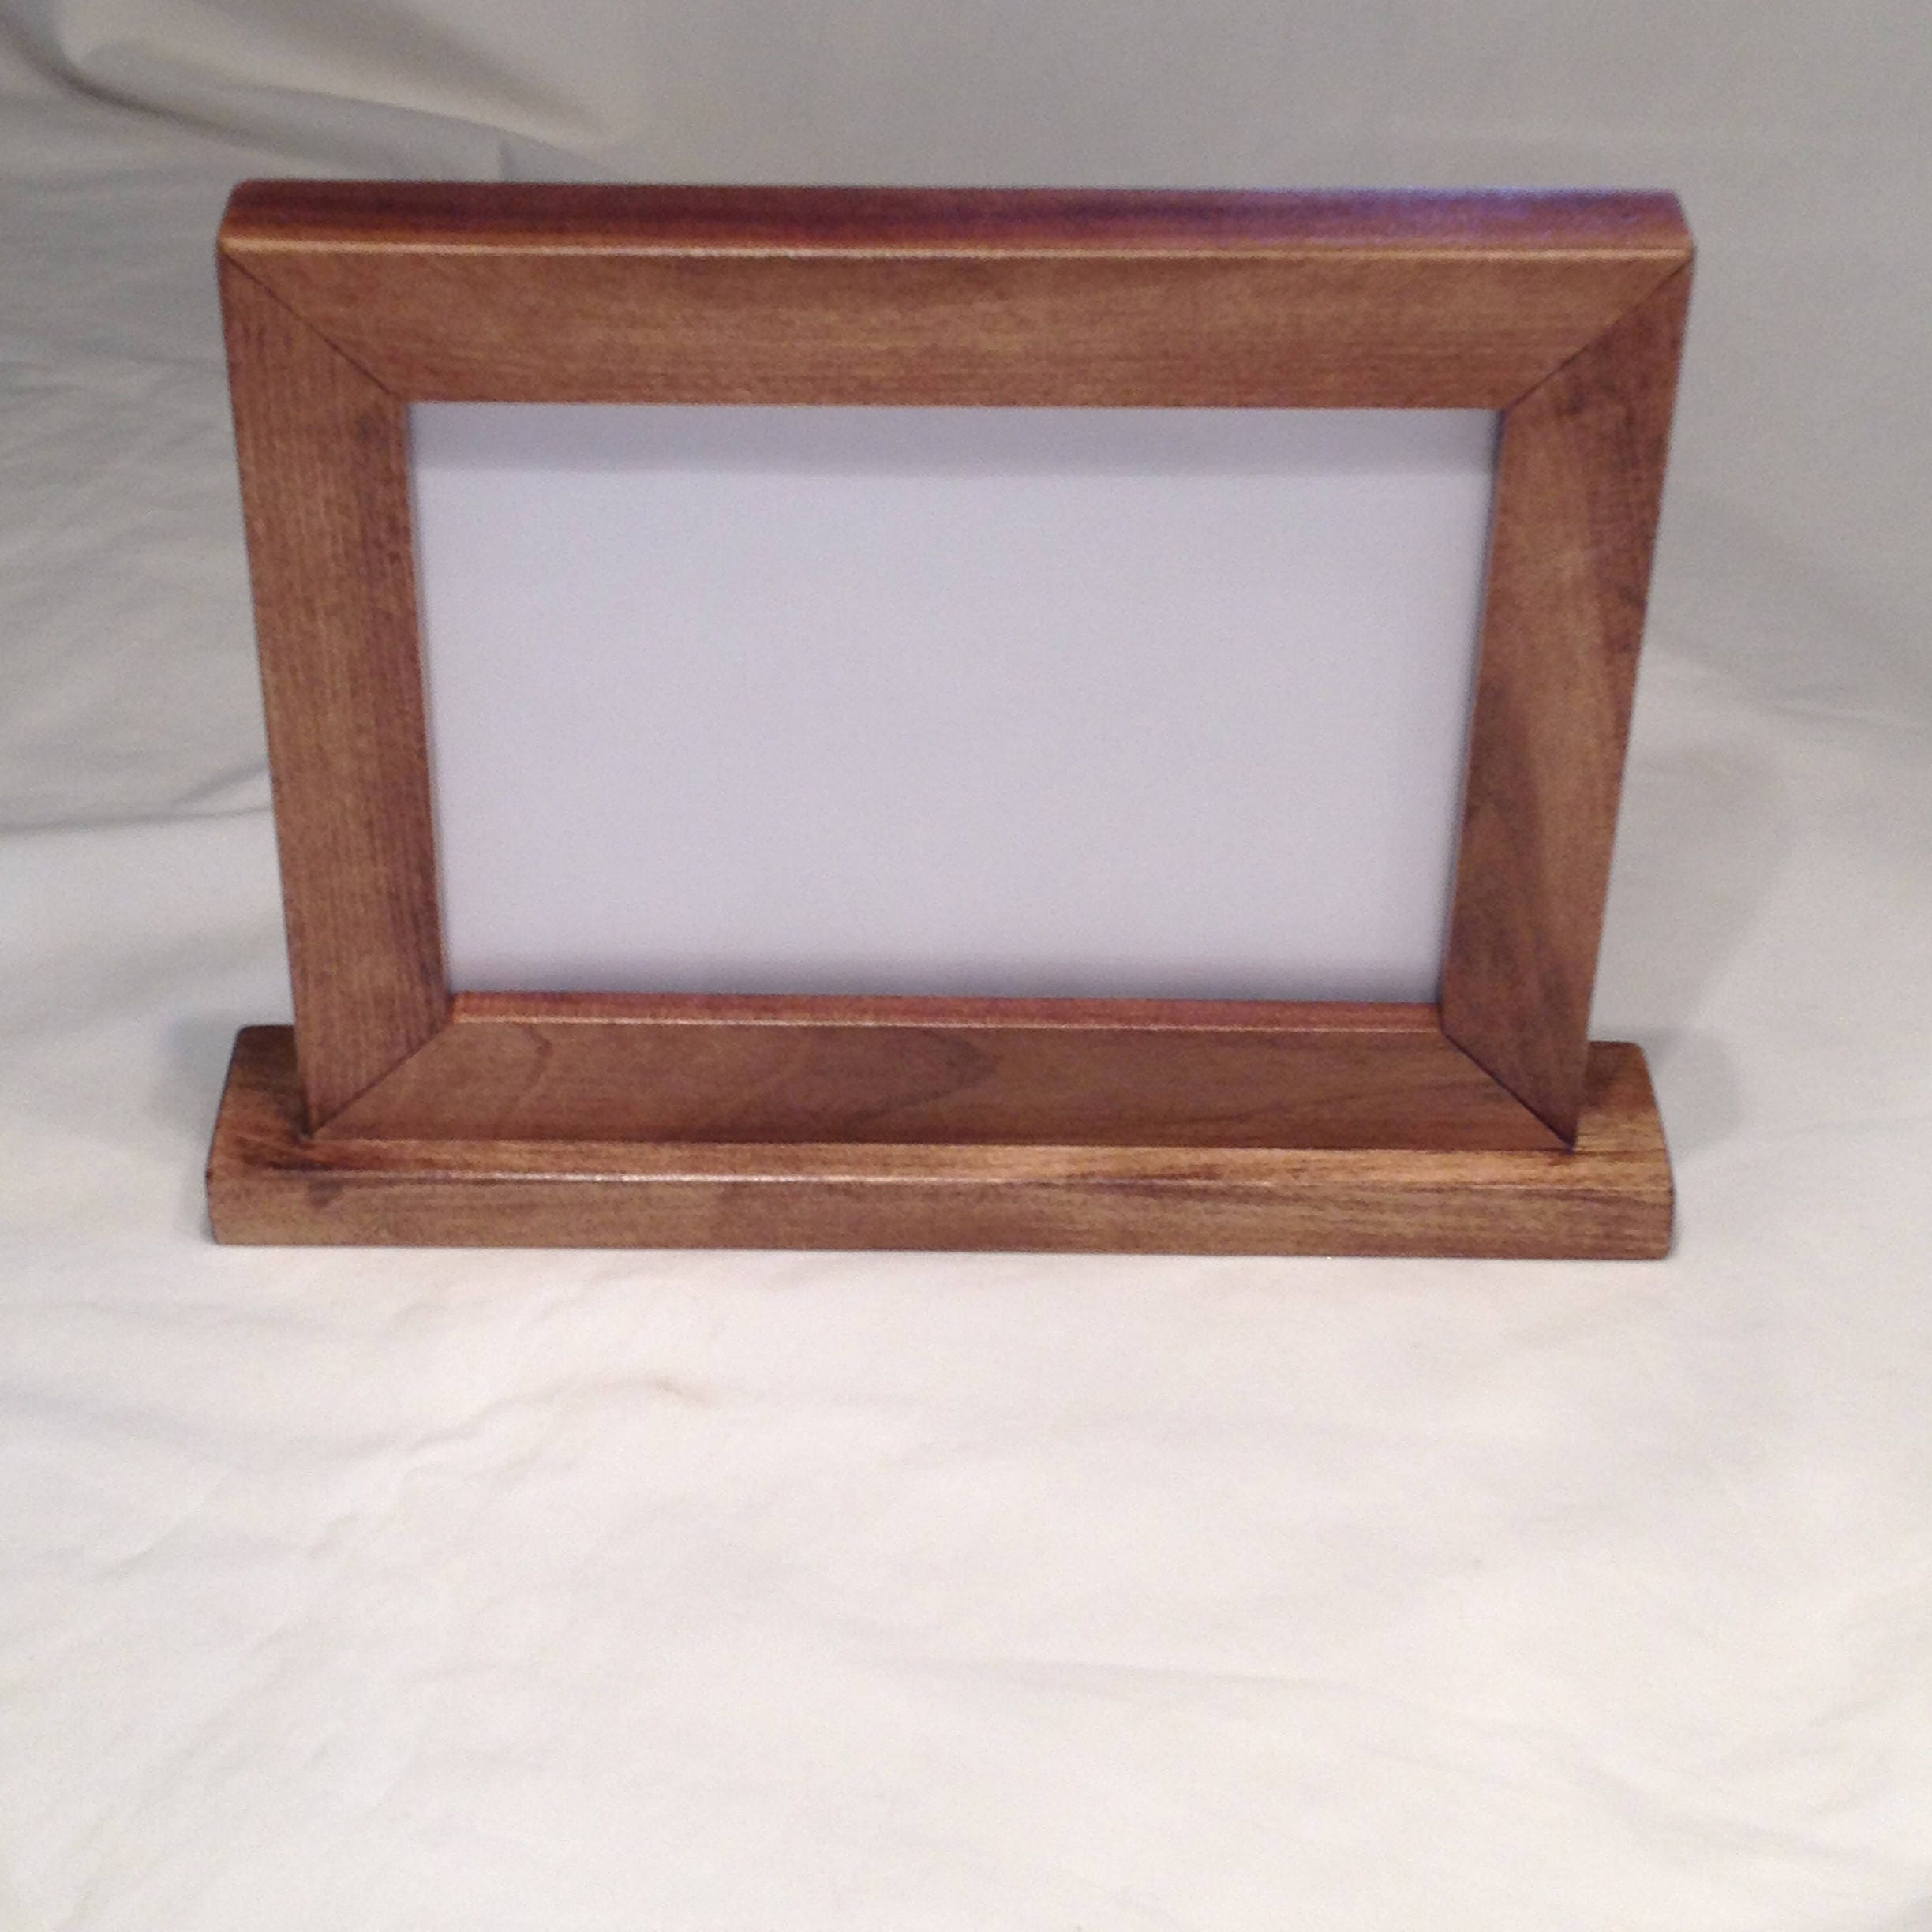 Funky Double Sided Frame 8x10 Frieze - Picture Frame Ideas ...